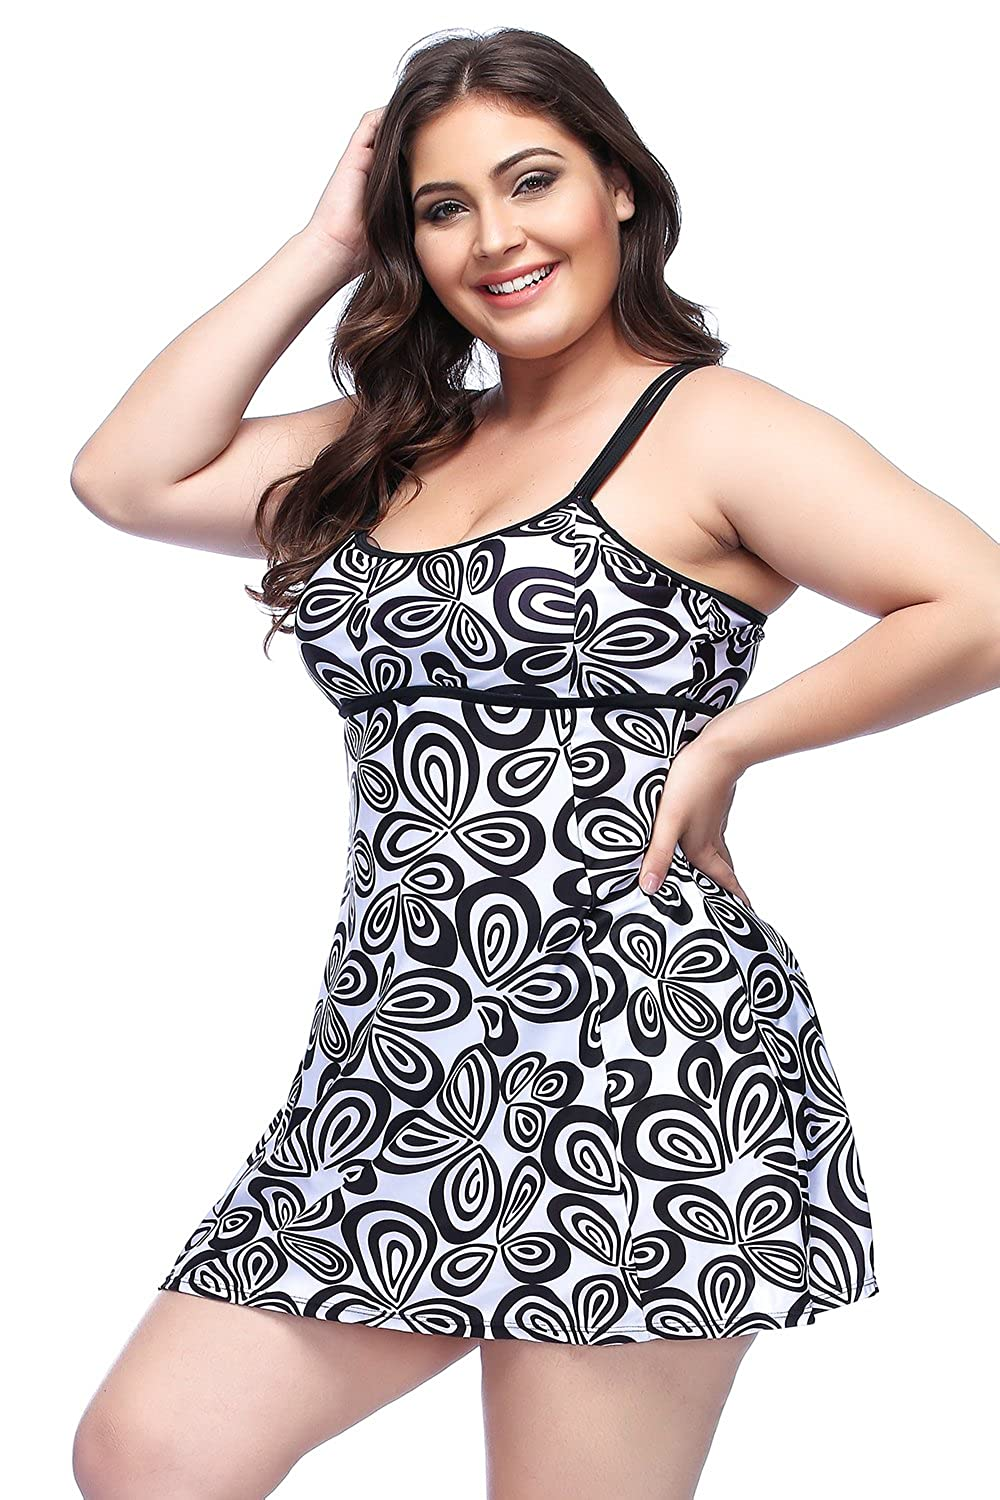 60s 70s Plus Size Dresses, Clothing, Costumes Xflyee Womens Plus Size Tankini Set Two Pieces Floral Printed Swimsuit L-XXXXL $29.99 AT vintagedancer.com